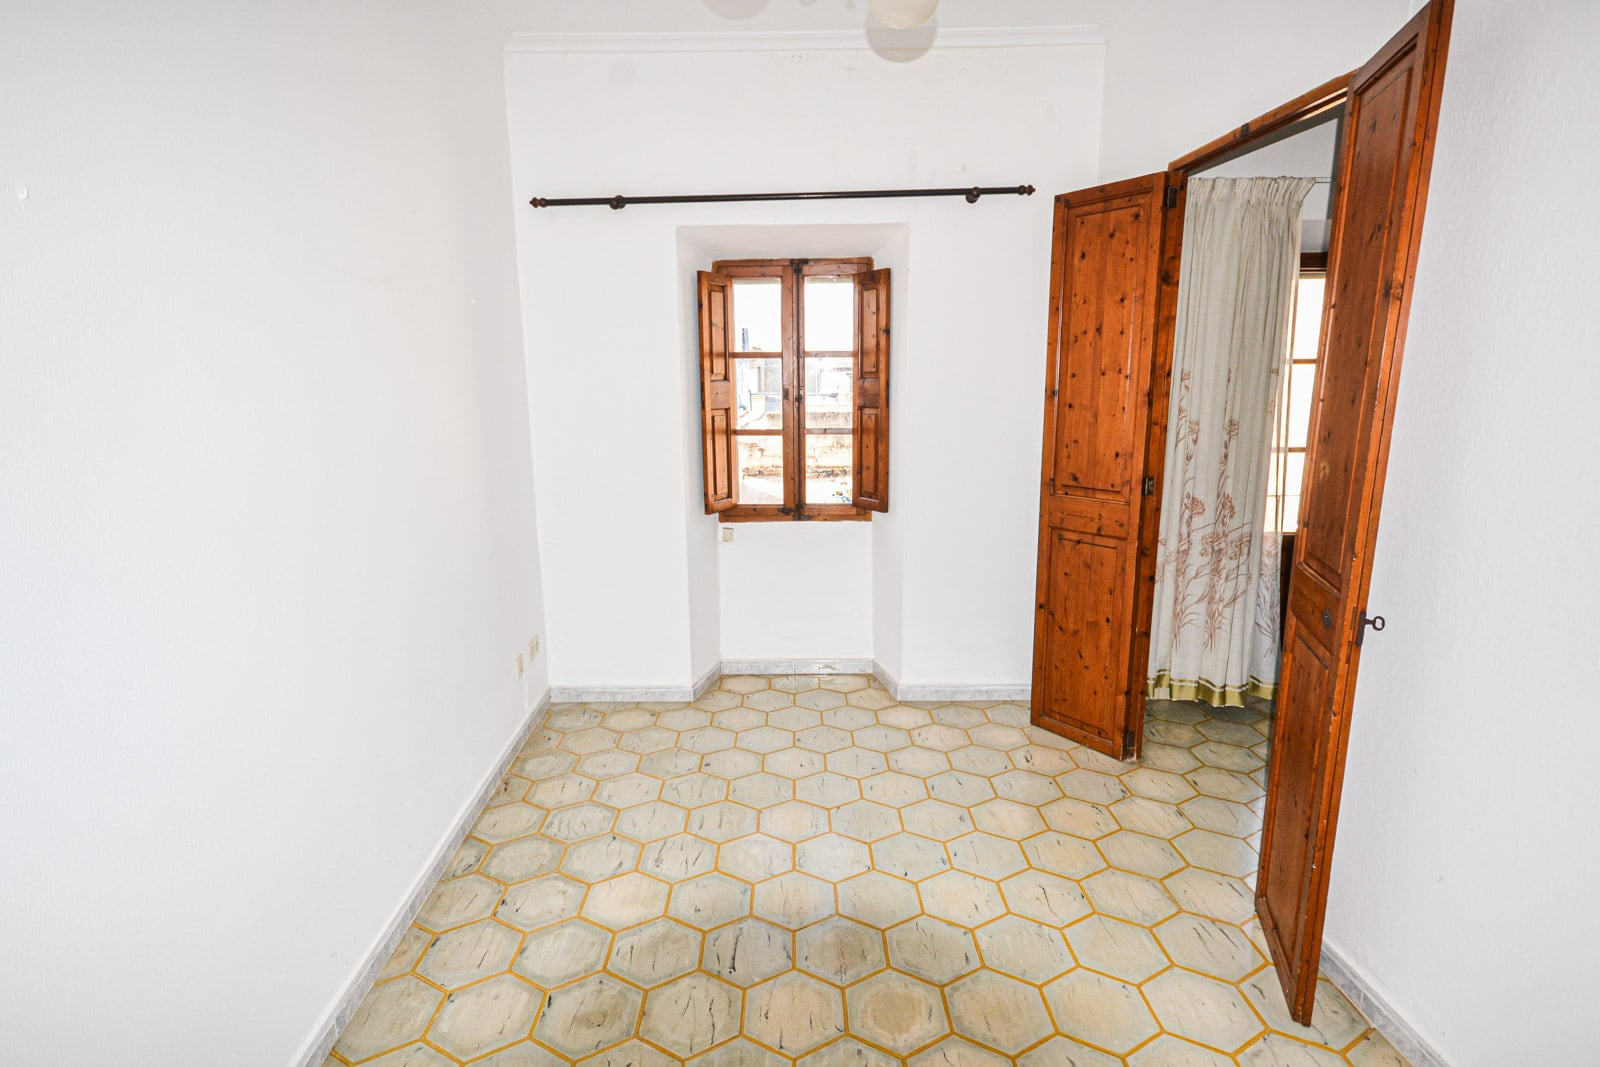 SOLD – Townhouse on different levels with garden and patio in Felanitx